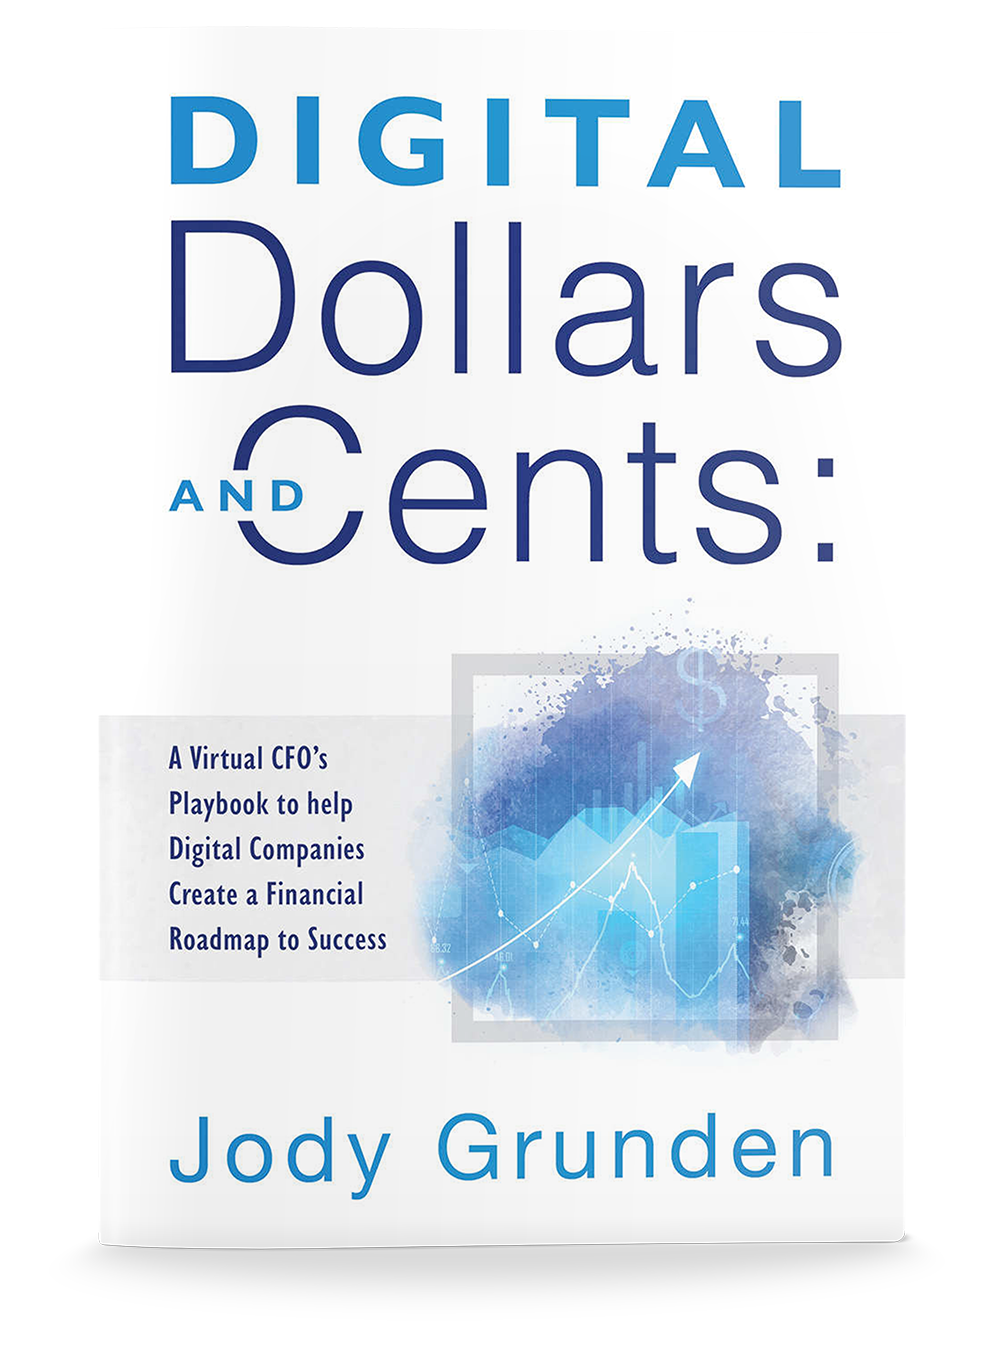 digital_dollars_and_cents-jody_grunden.png